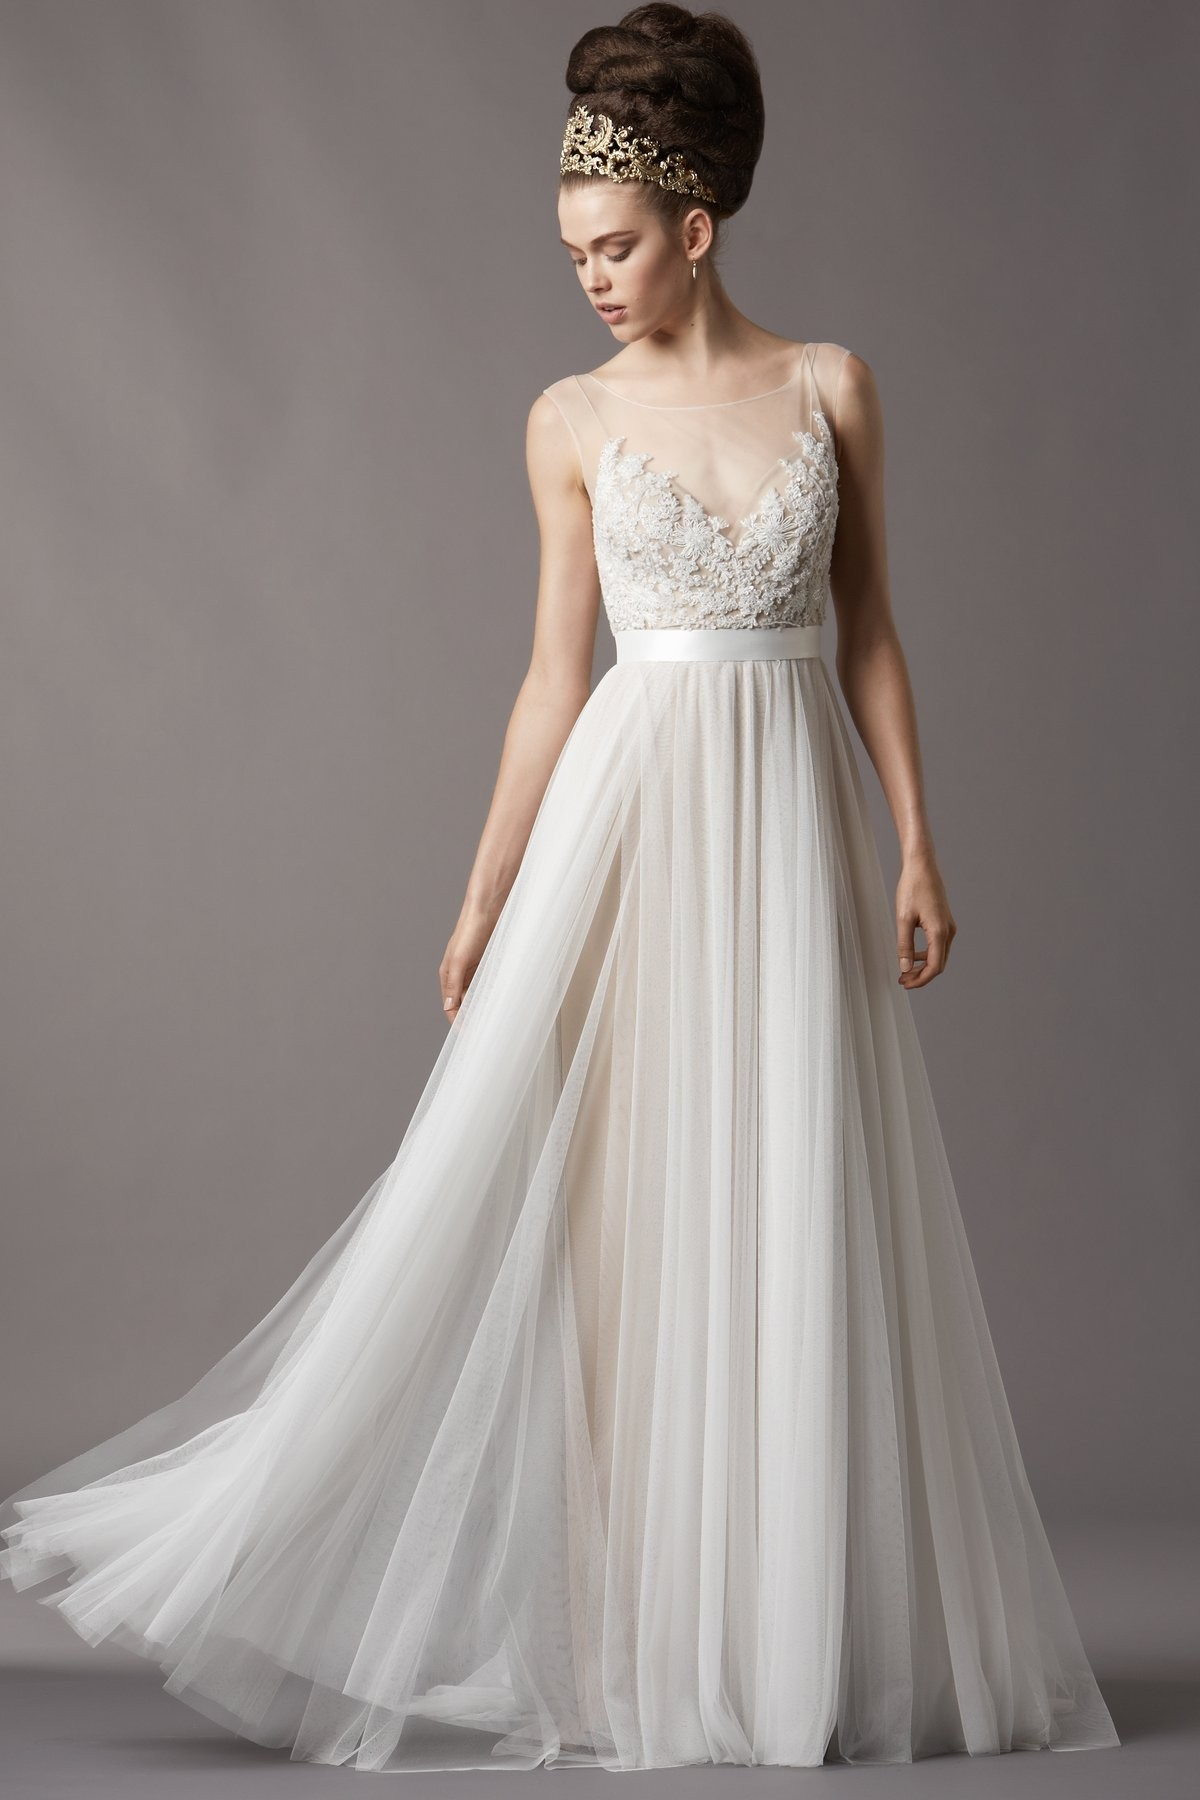 modern wedding dresses for the contemporary bride contemporary wedding dresses Modern Wedding Dresses For the Contemporary Bride